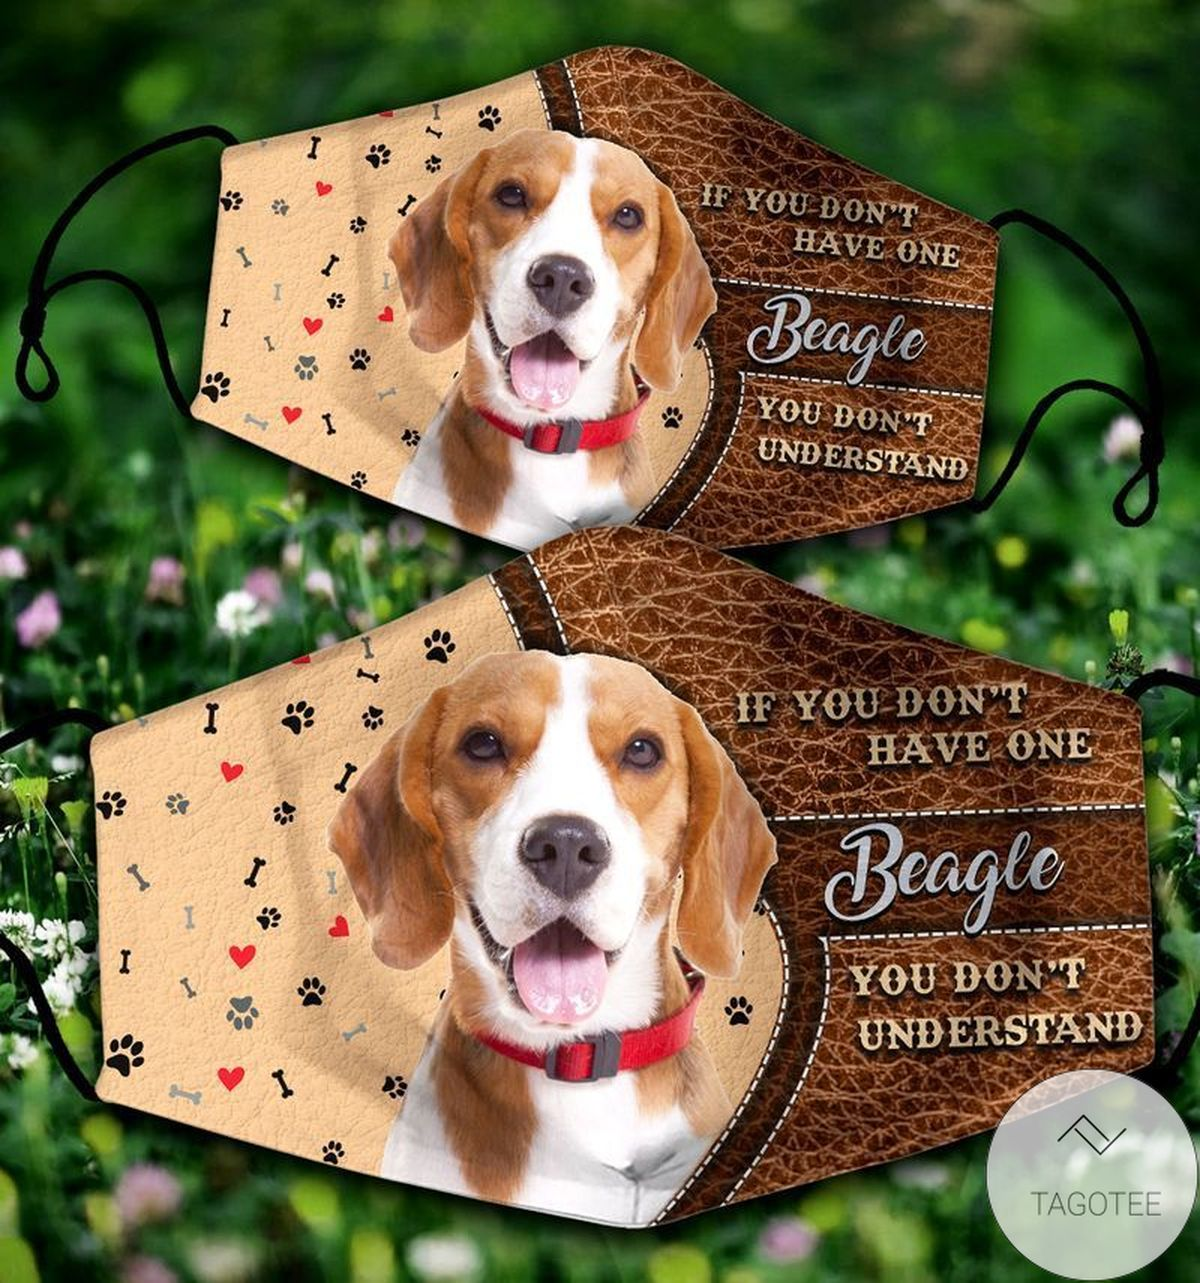 If You Don't Have One Beagle You Don't Understand Mask